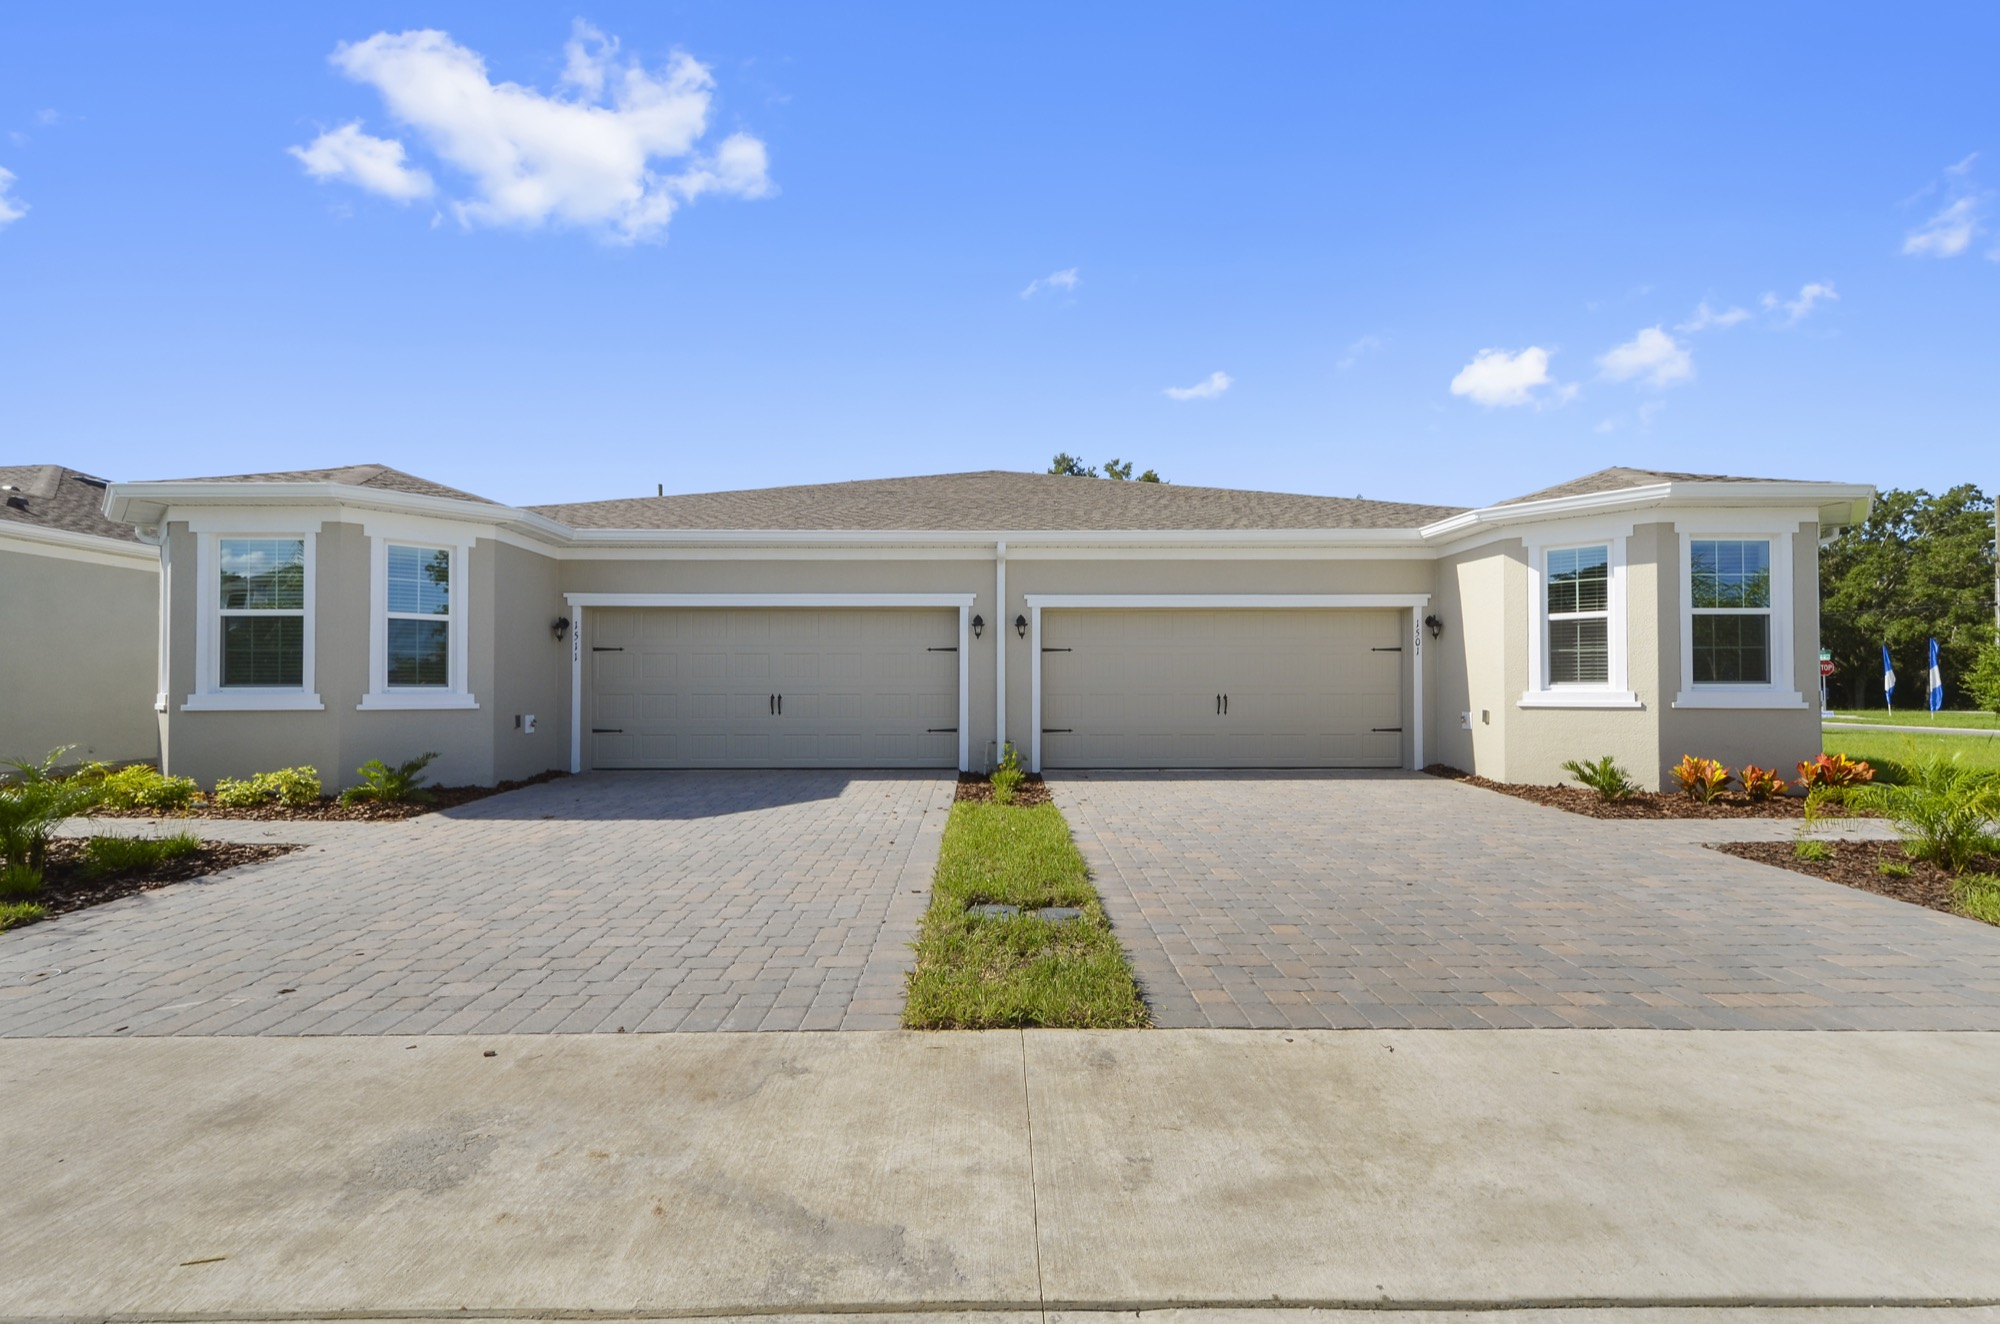 1501 Mossycup Drive, Saint Cloud Fl , 34771